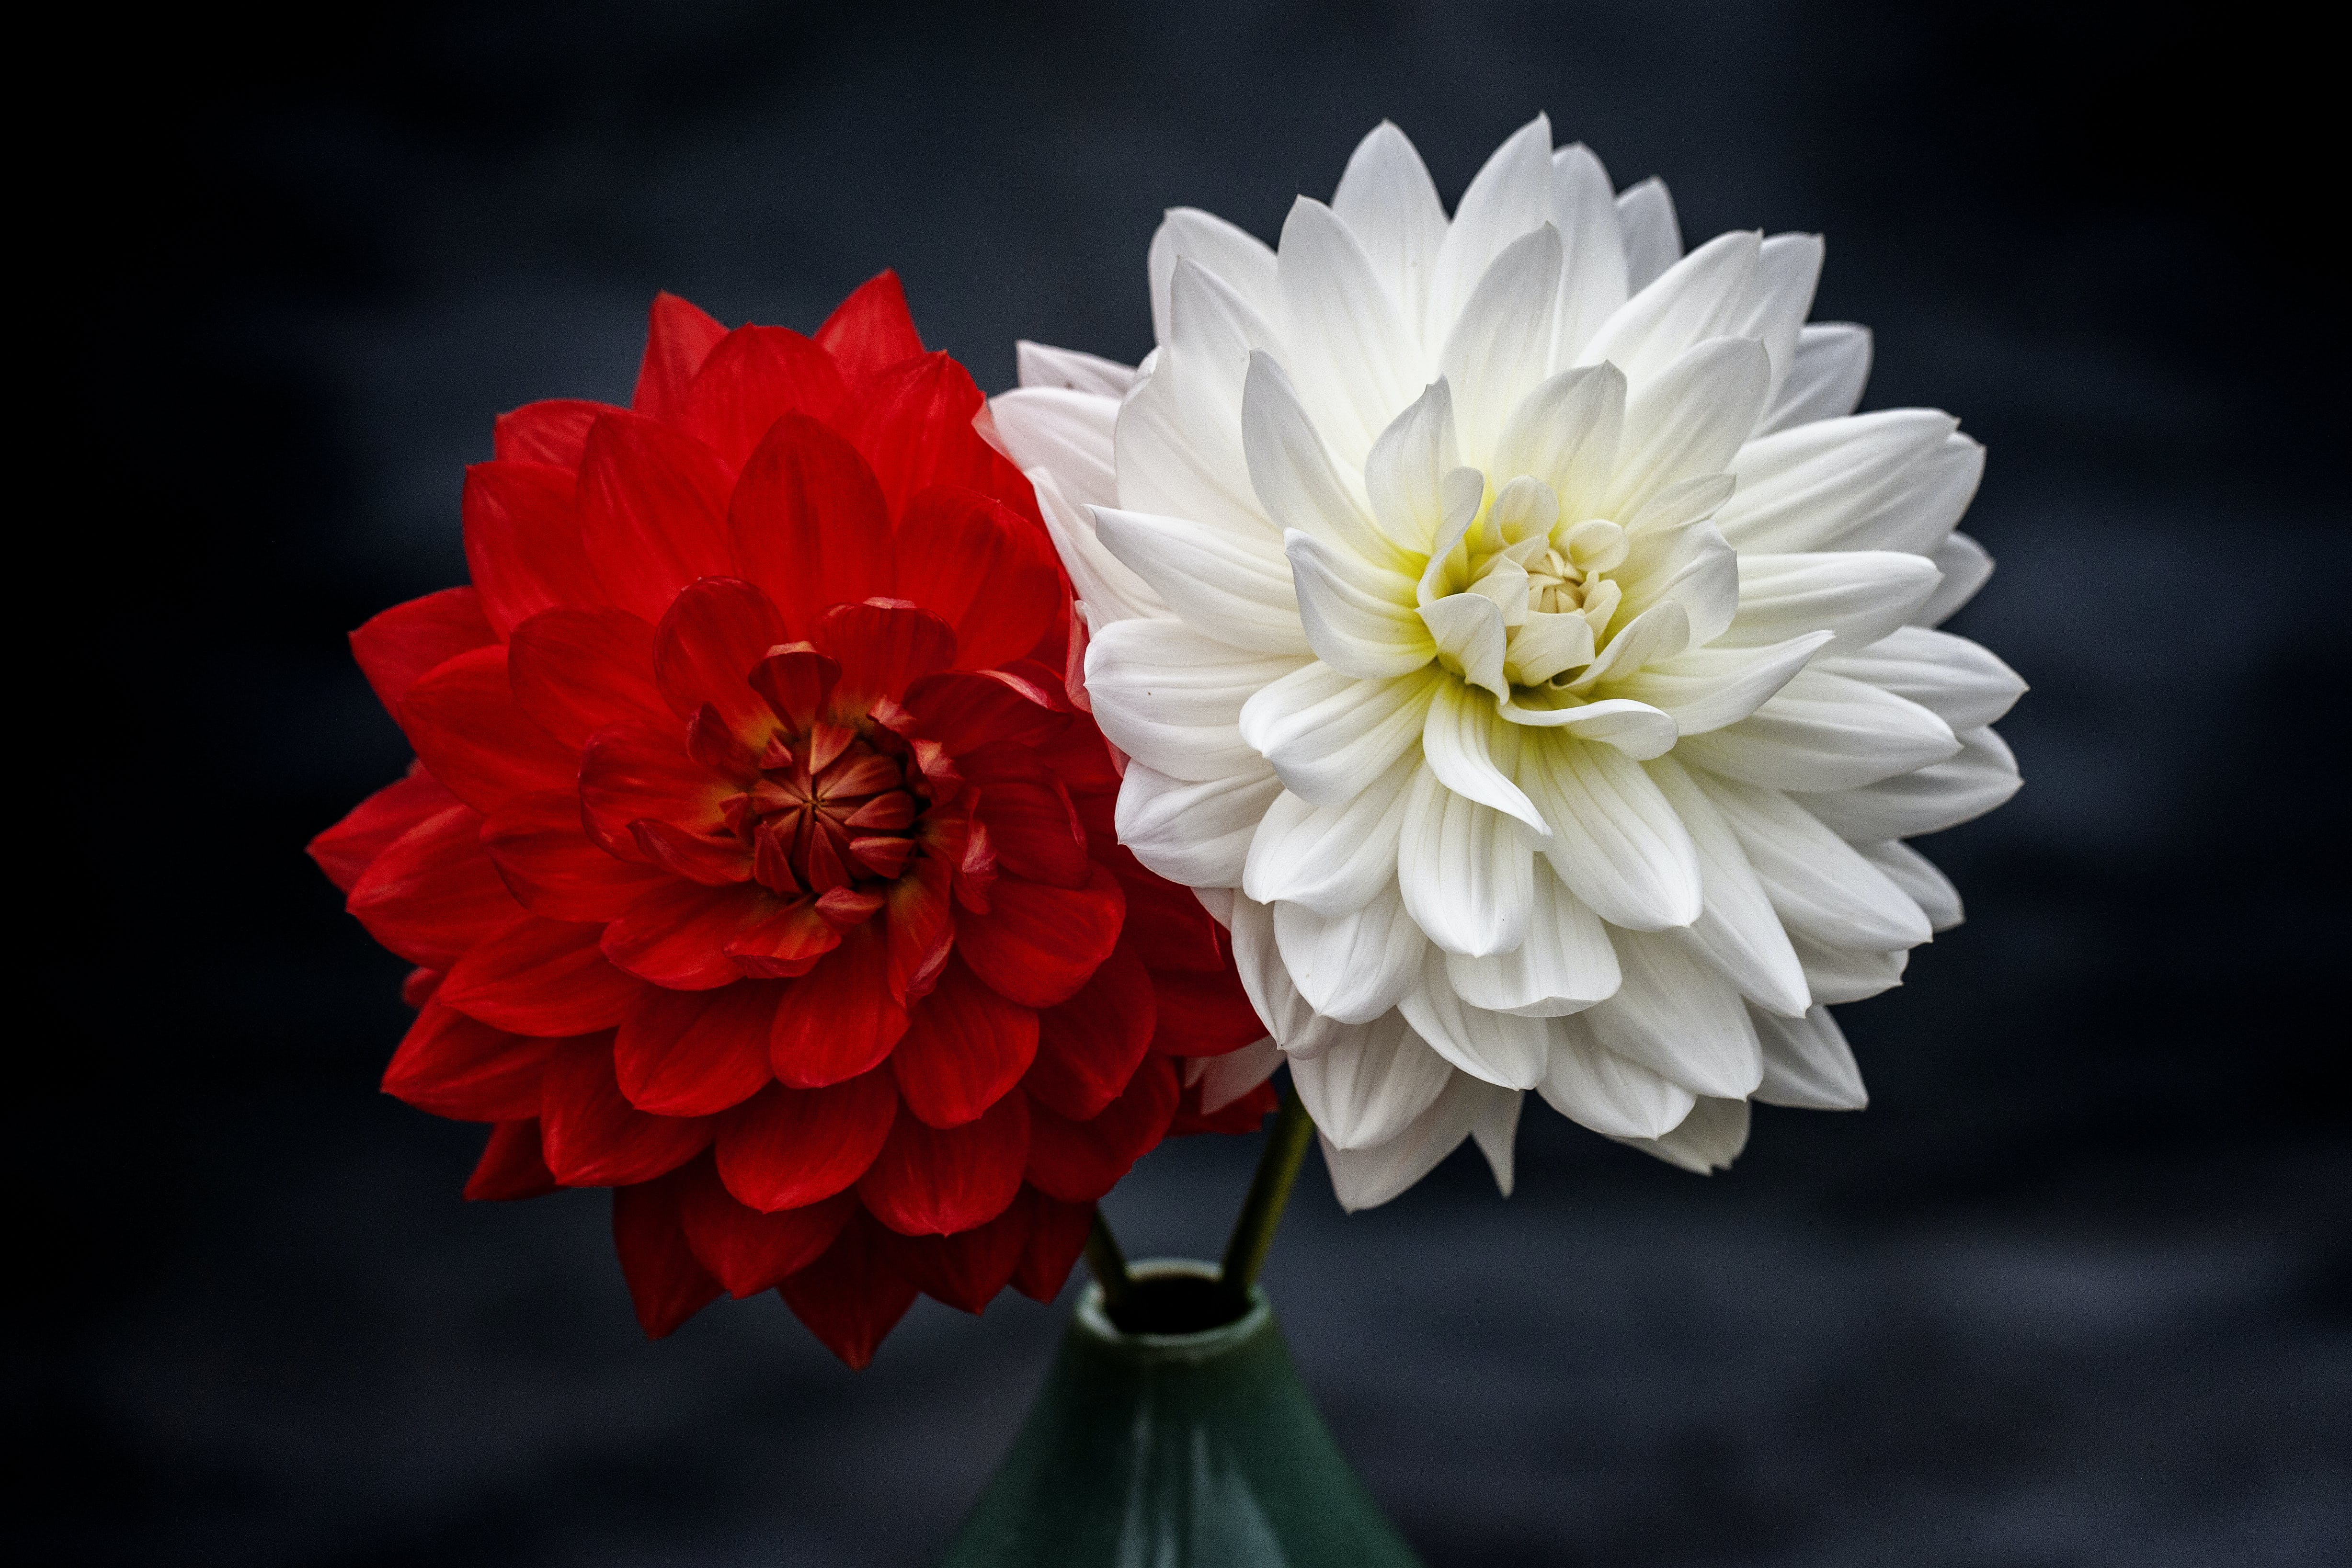 Photo of Red and White Petaled Flowers